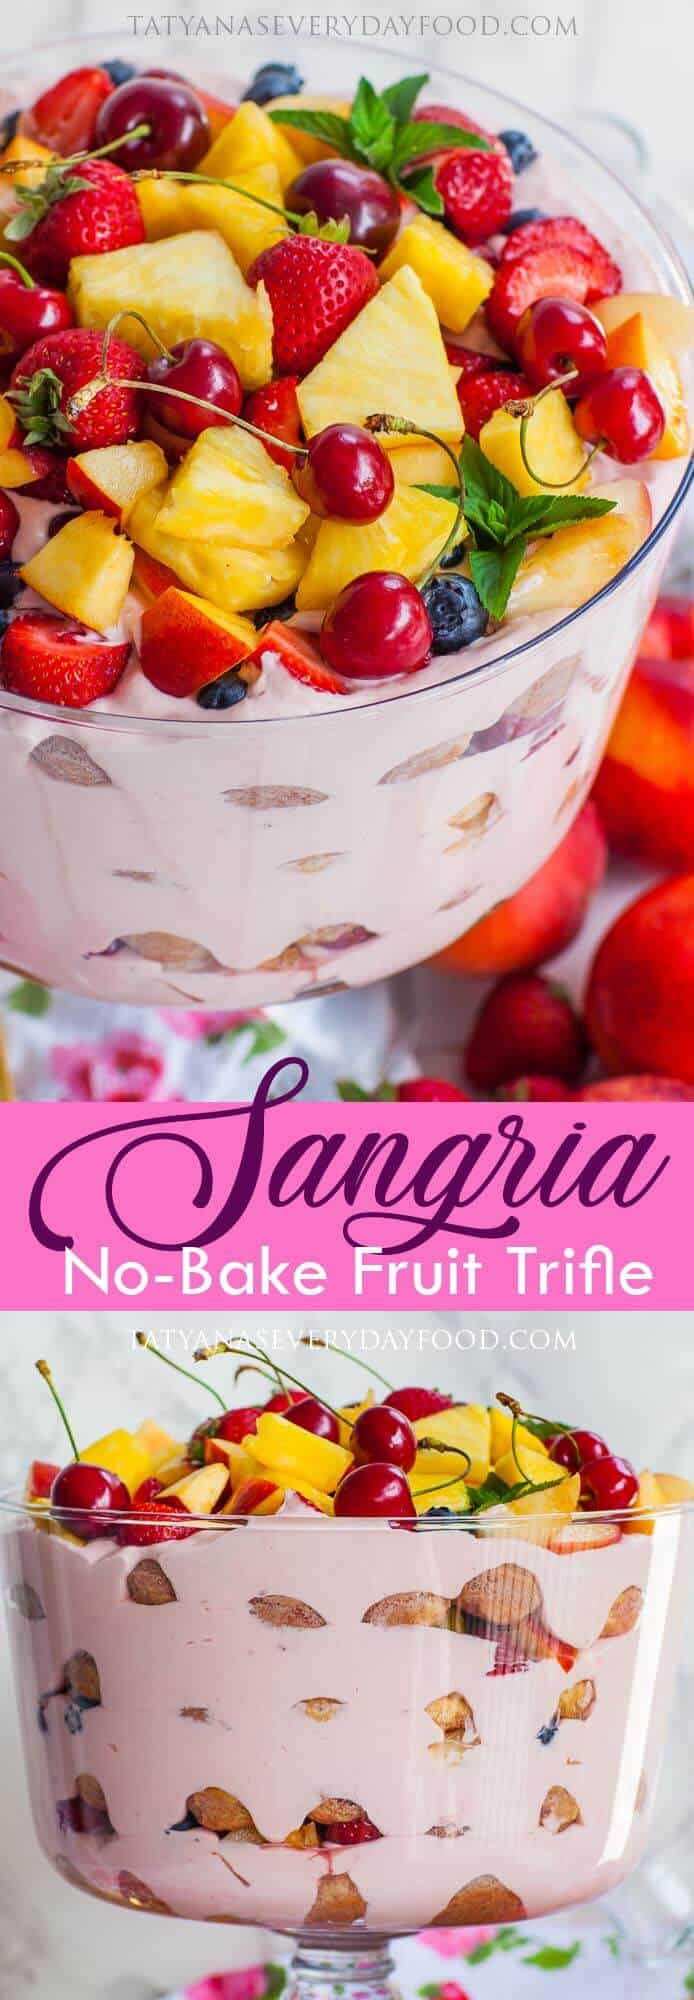 No-Bake Sangria Fruit Trifle video recipe